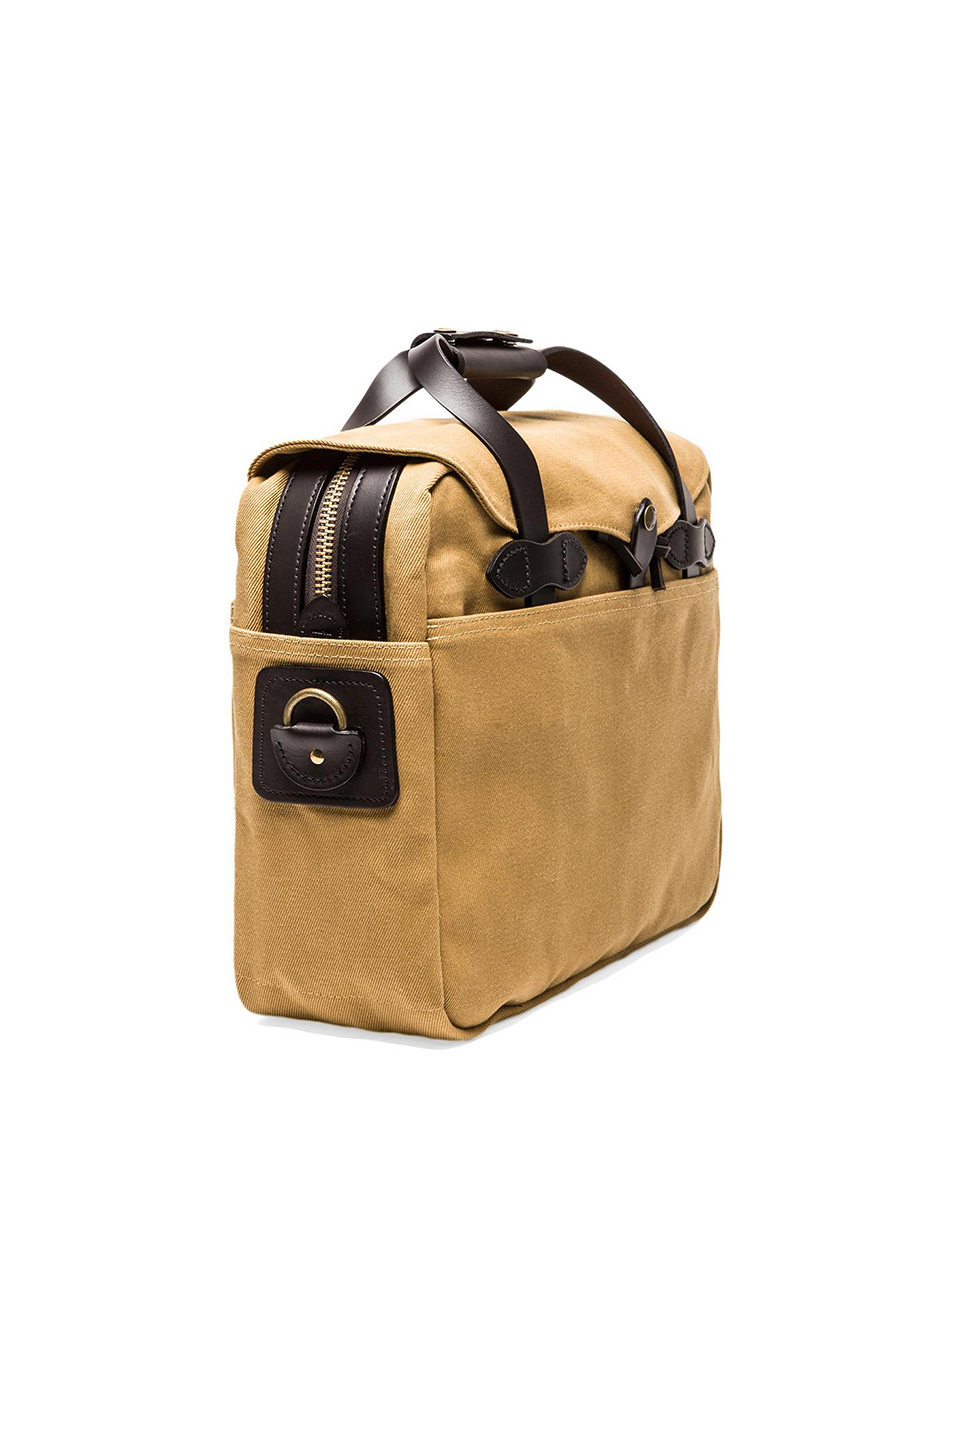 Filson Large Briefcase/Computer Case in Tan